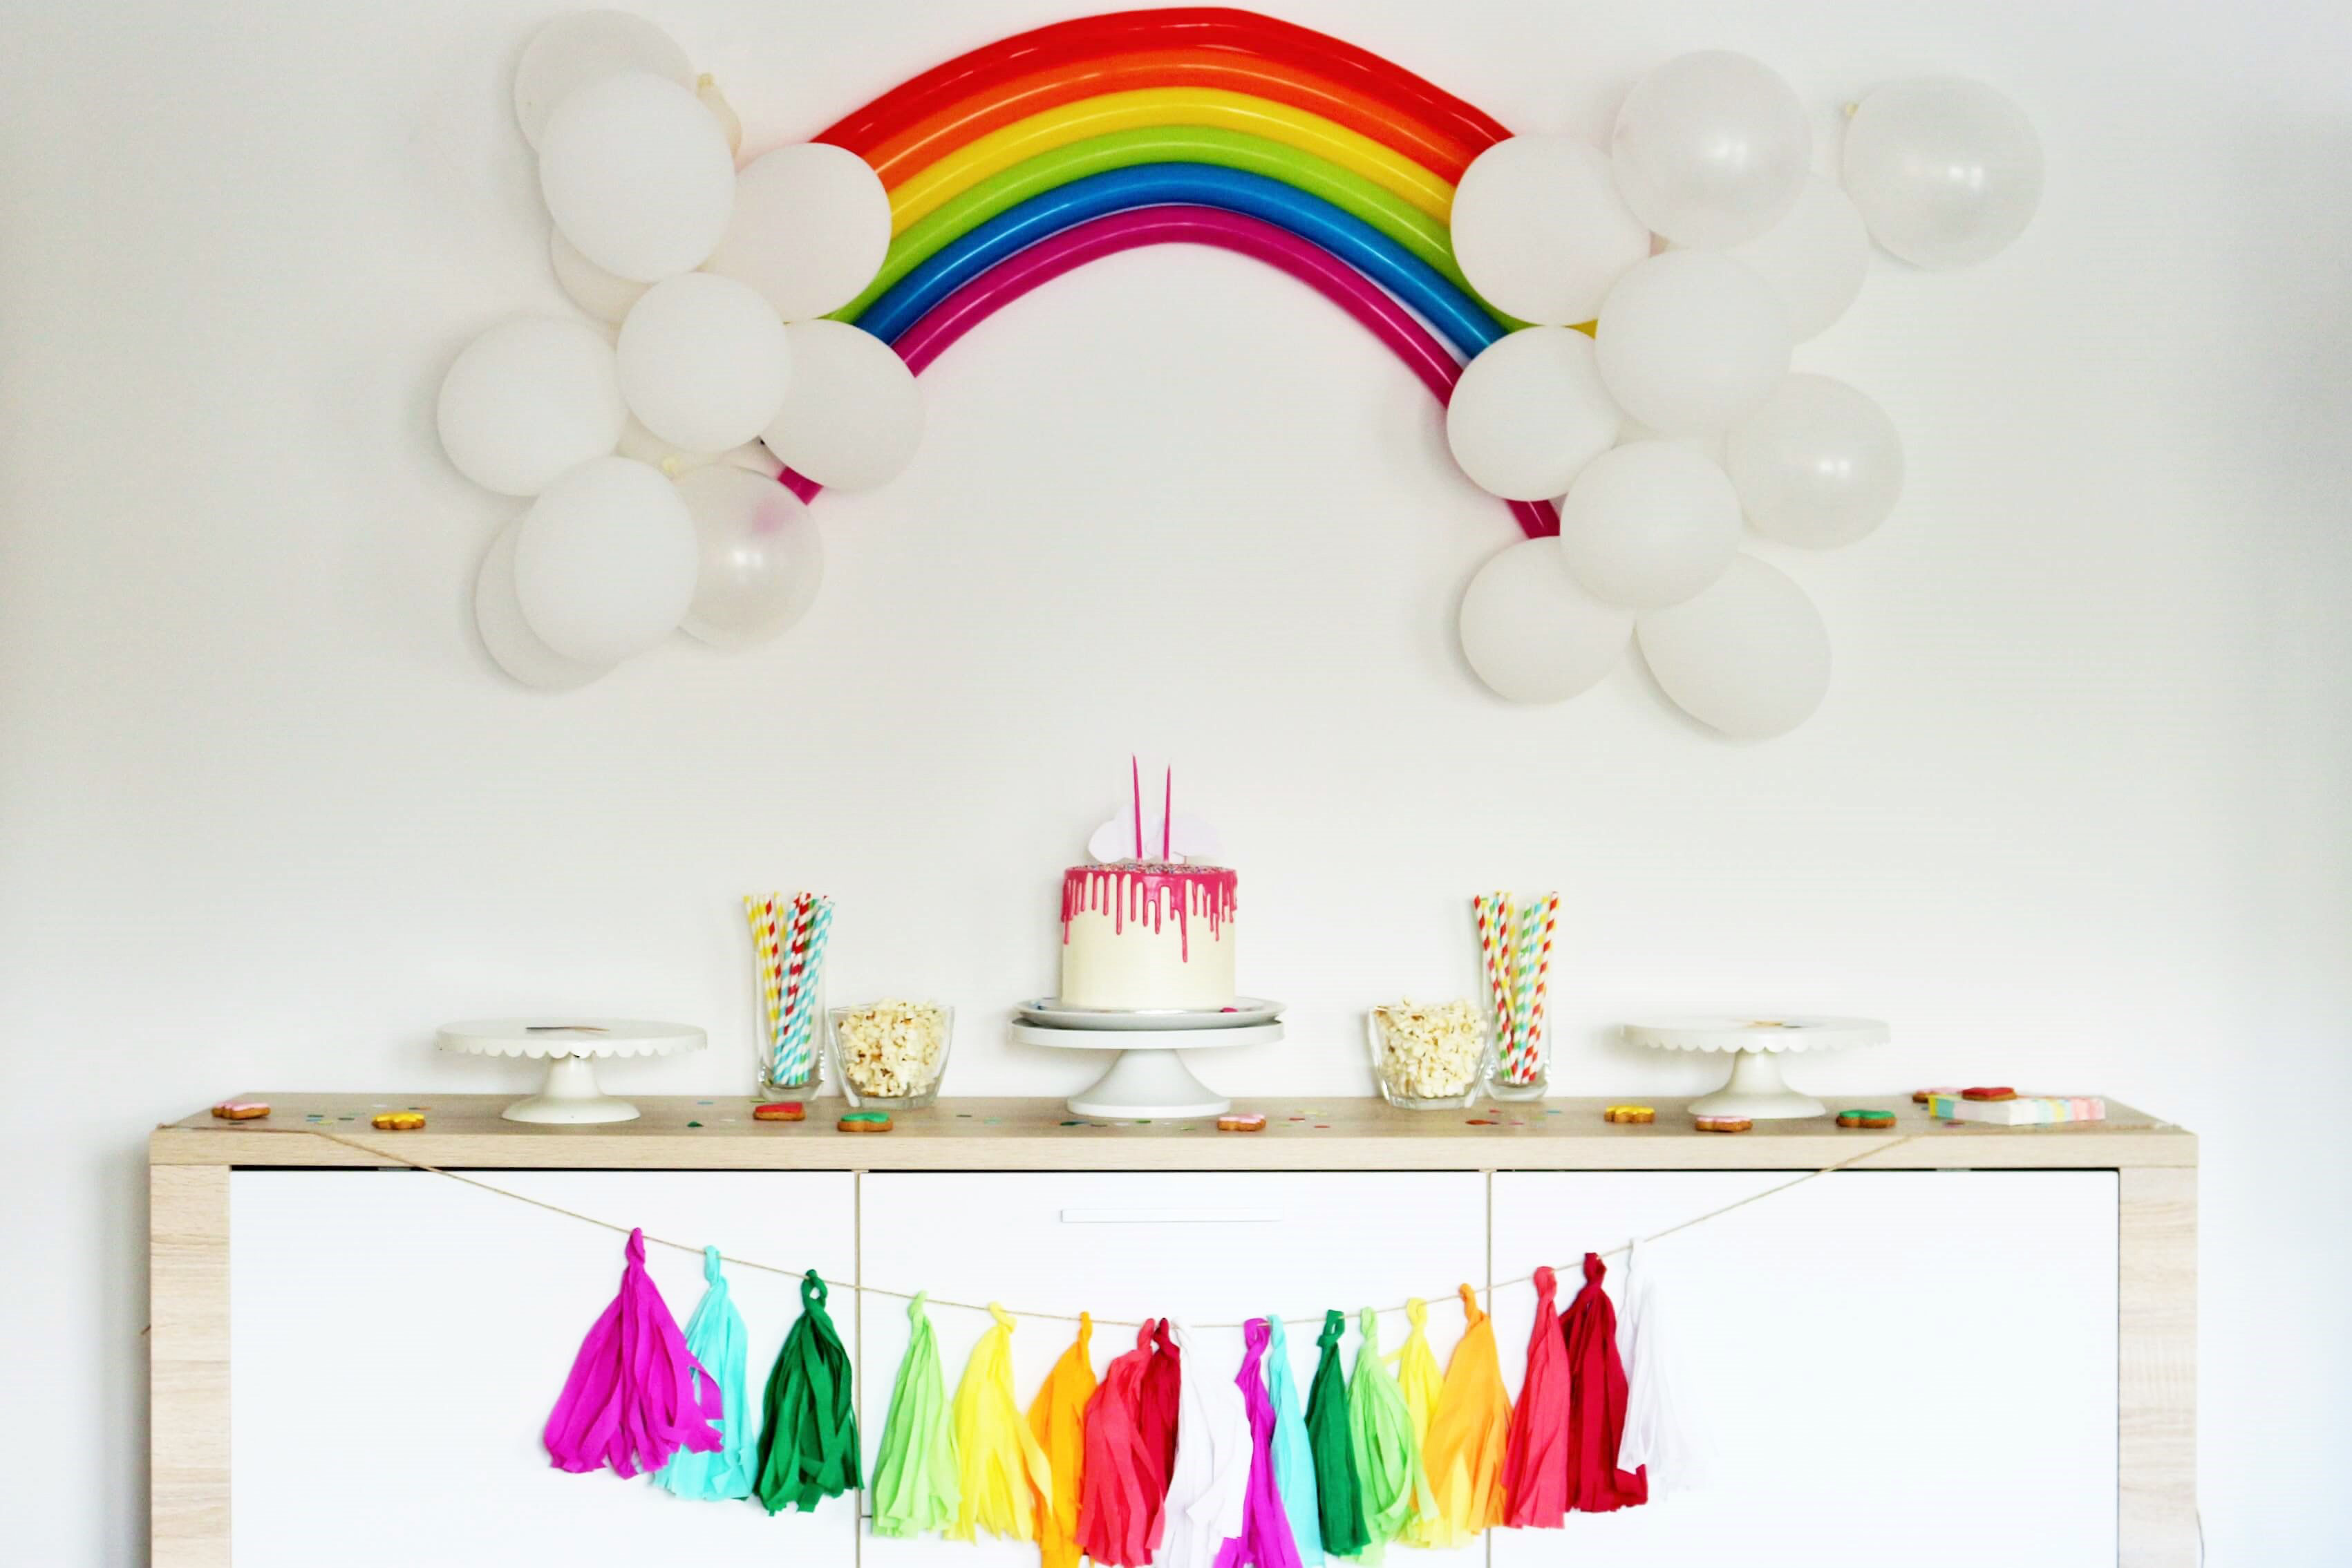 Regenbogen party ideen partystories blog - 18 geburtstag deko ideen ...